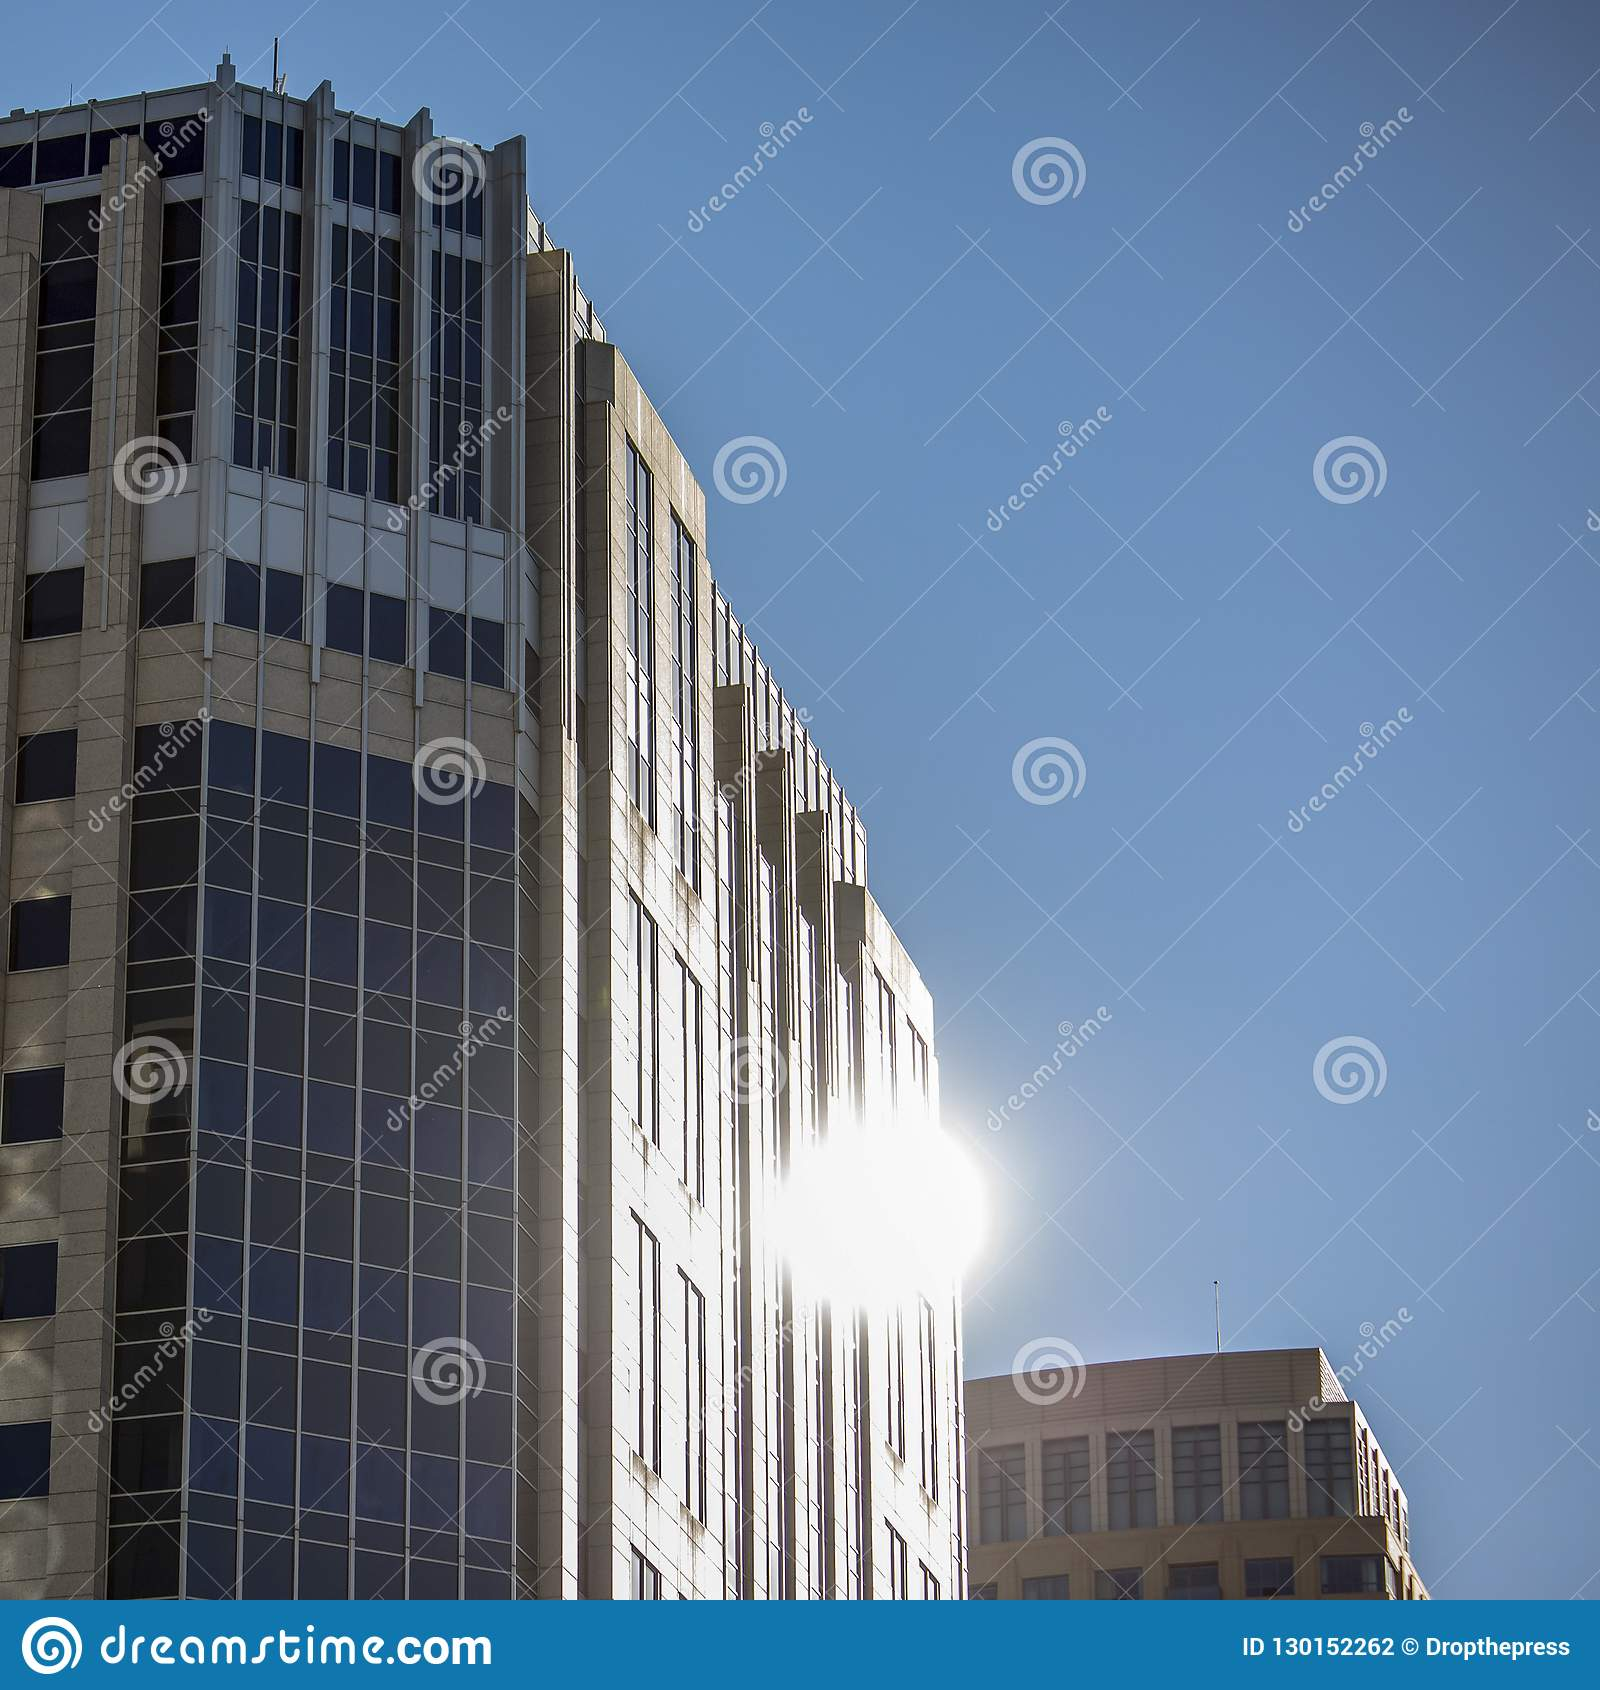 Salt Lake City Downtown Buildings: Blue Glass Building With Reflection Of The Sun Stock Photo